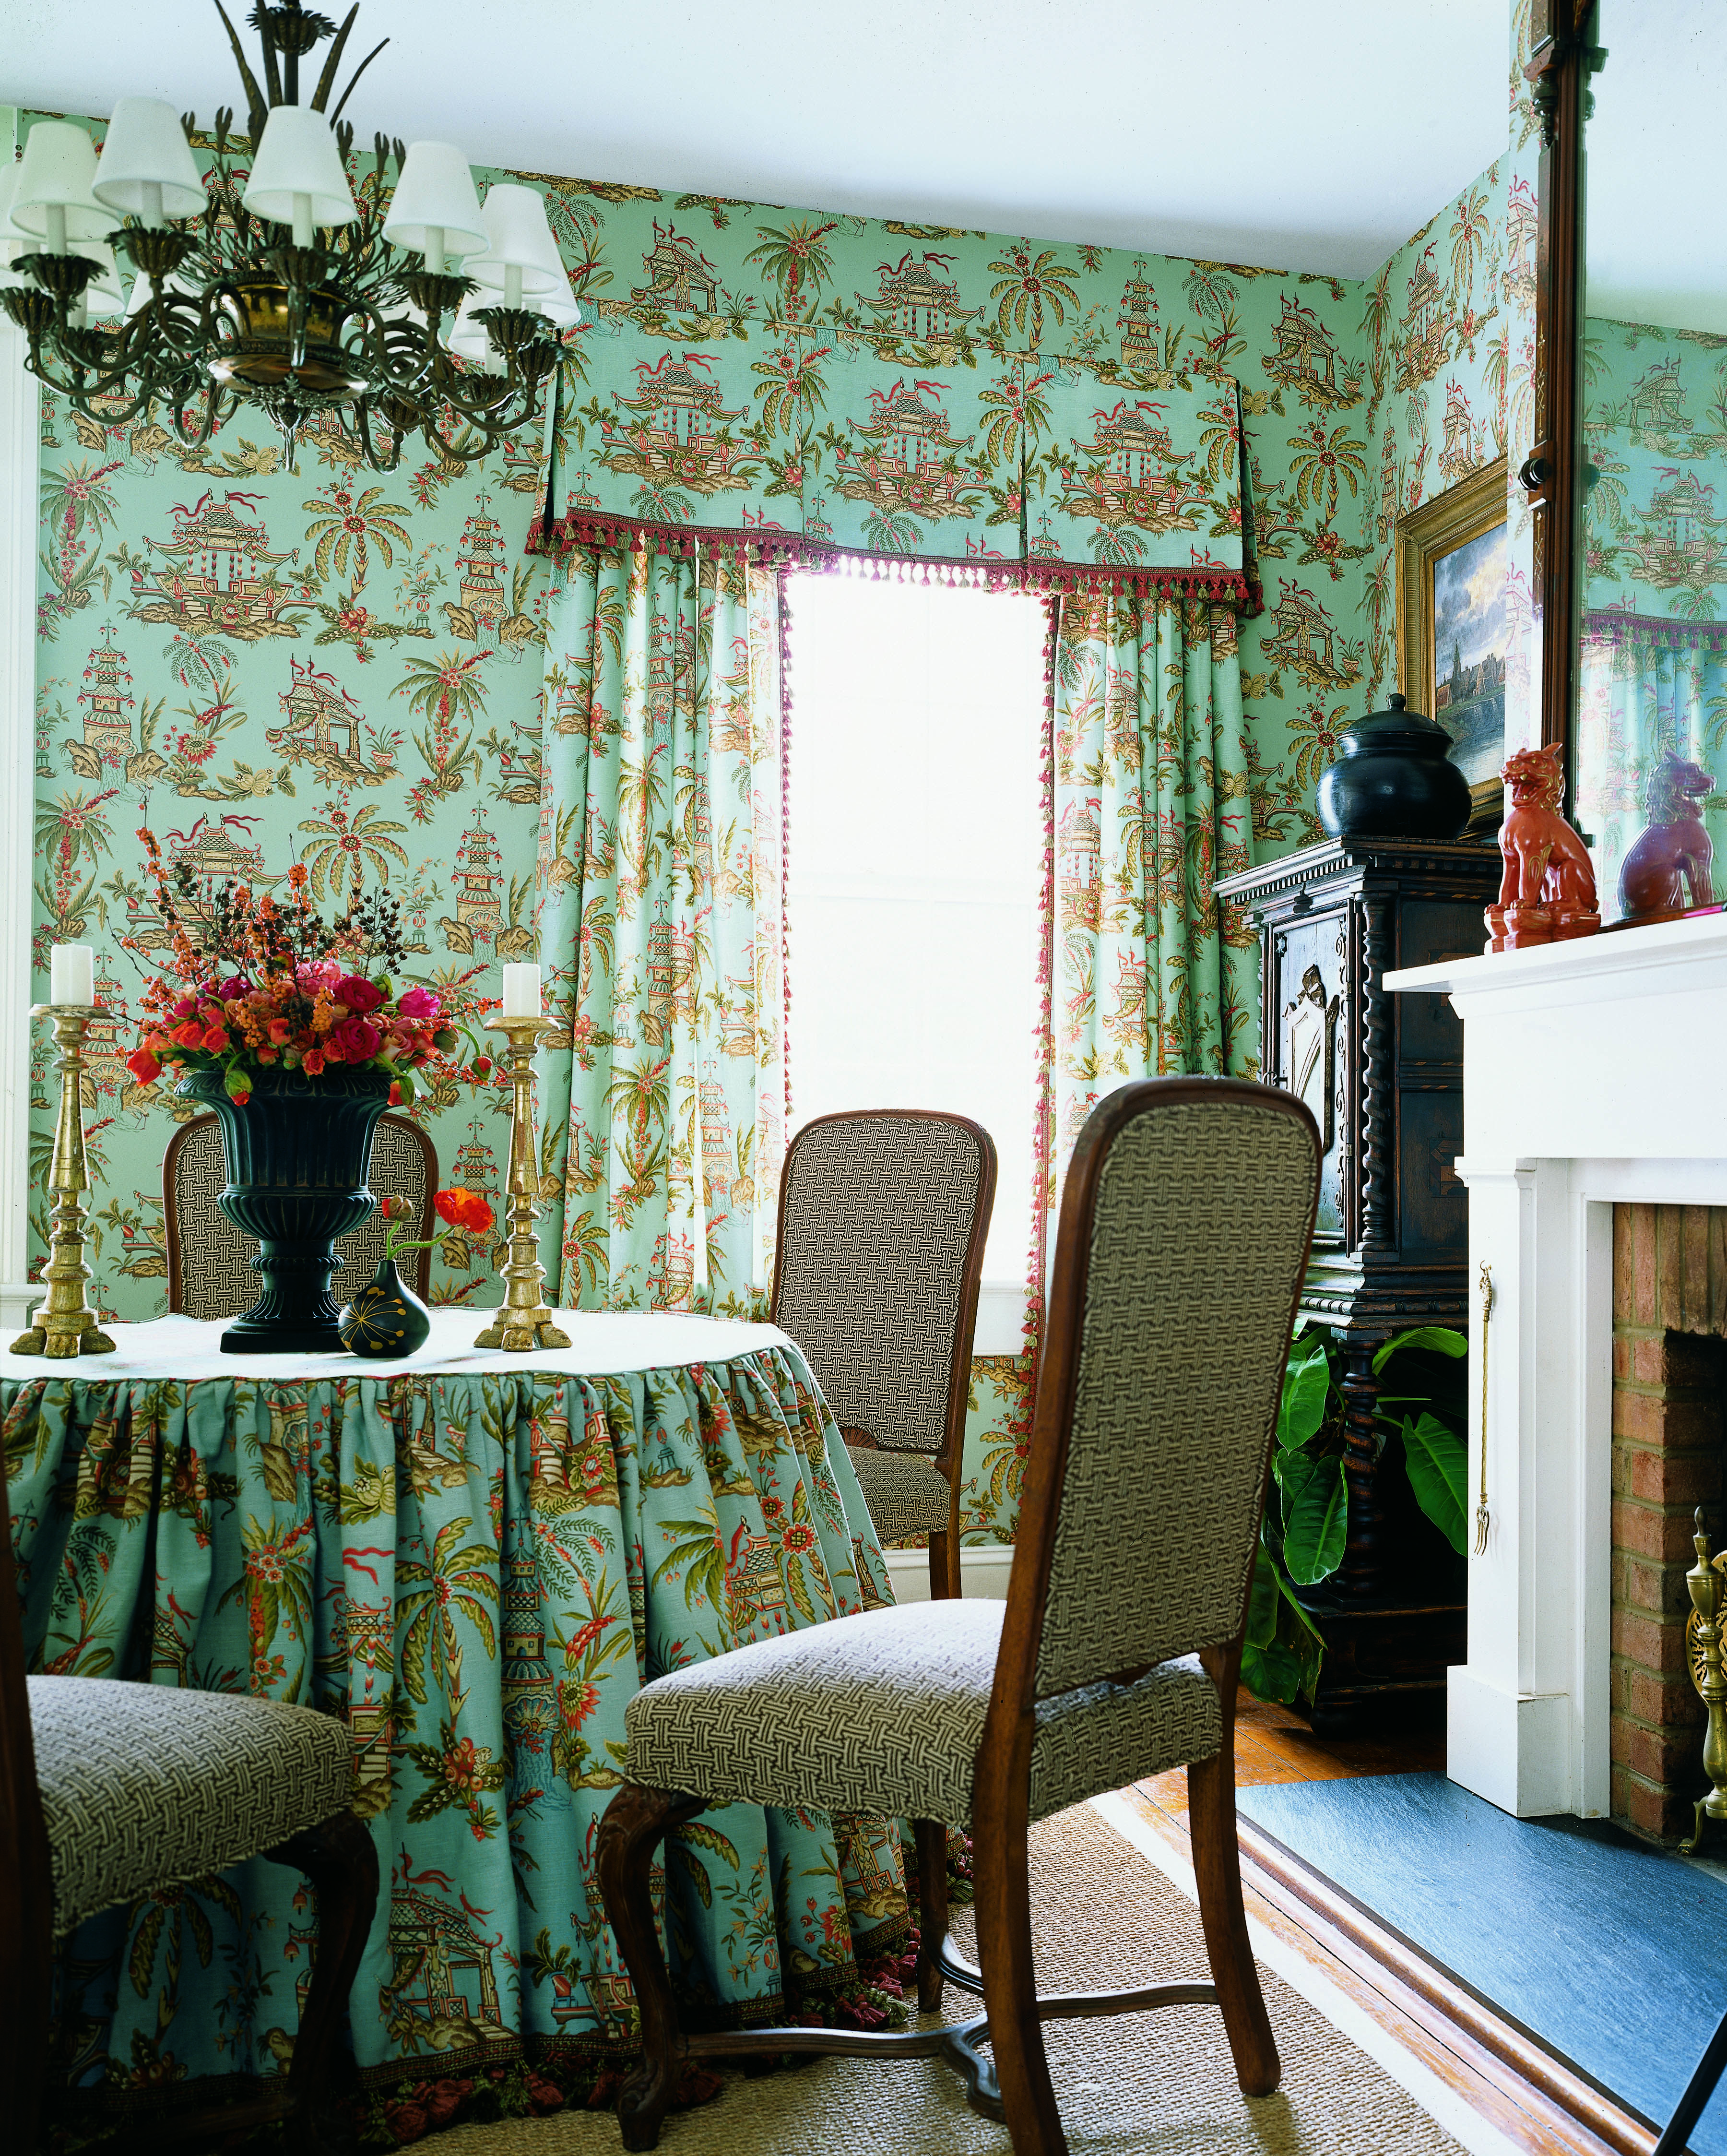 Tea House #wallpaper and #fabric in #teal from the Tea House ...